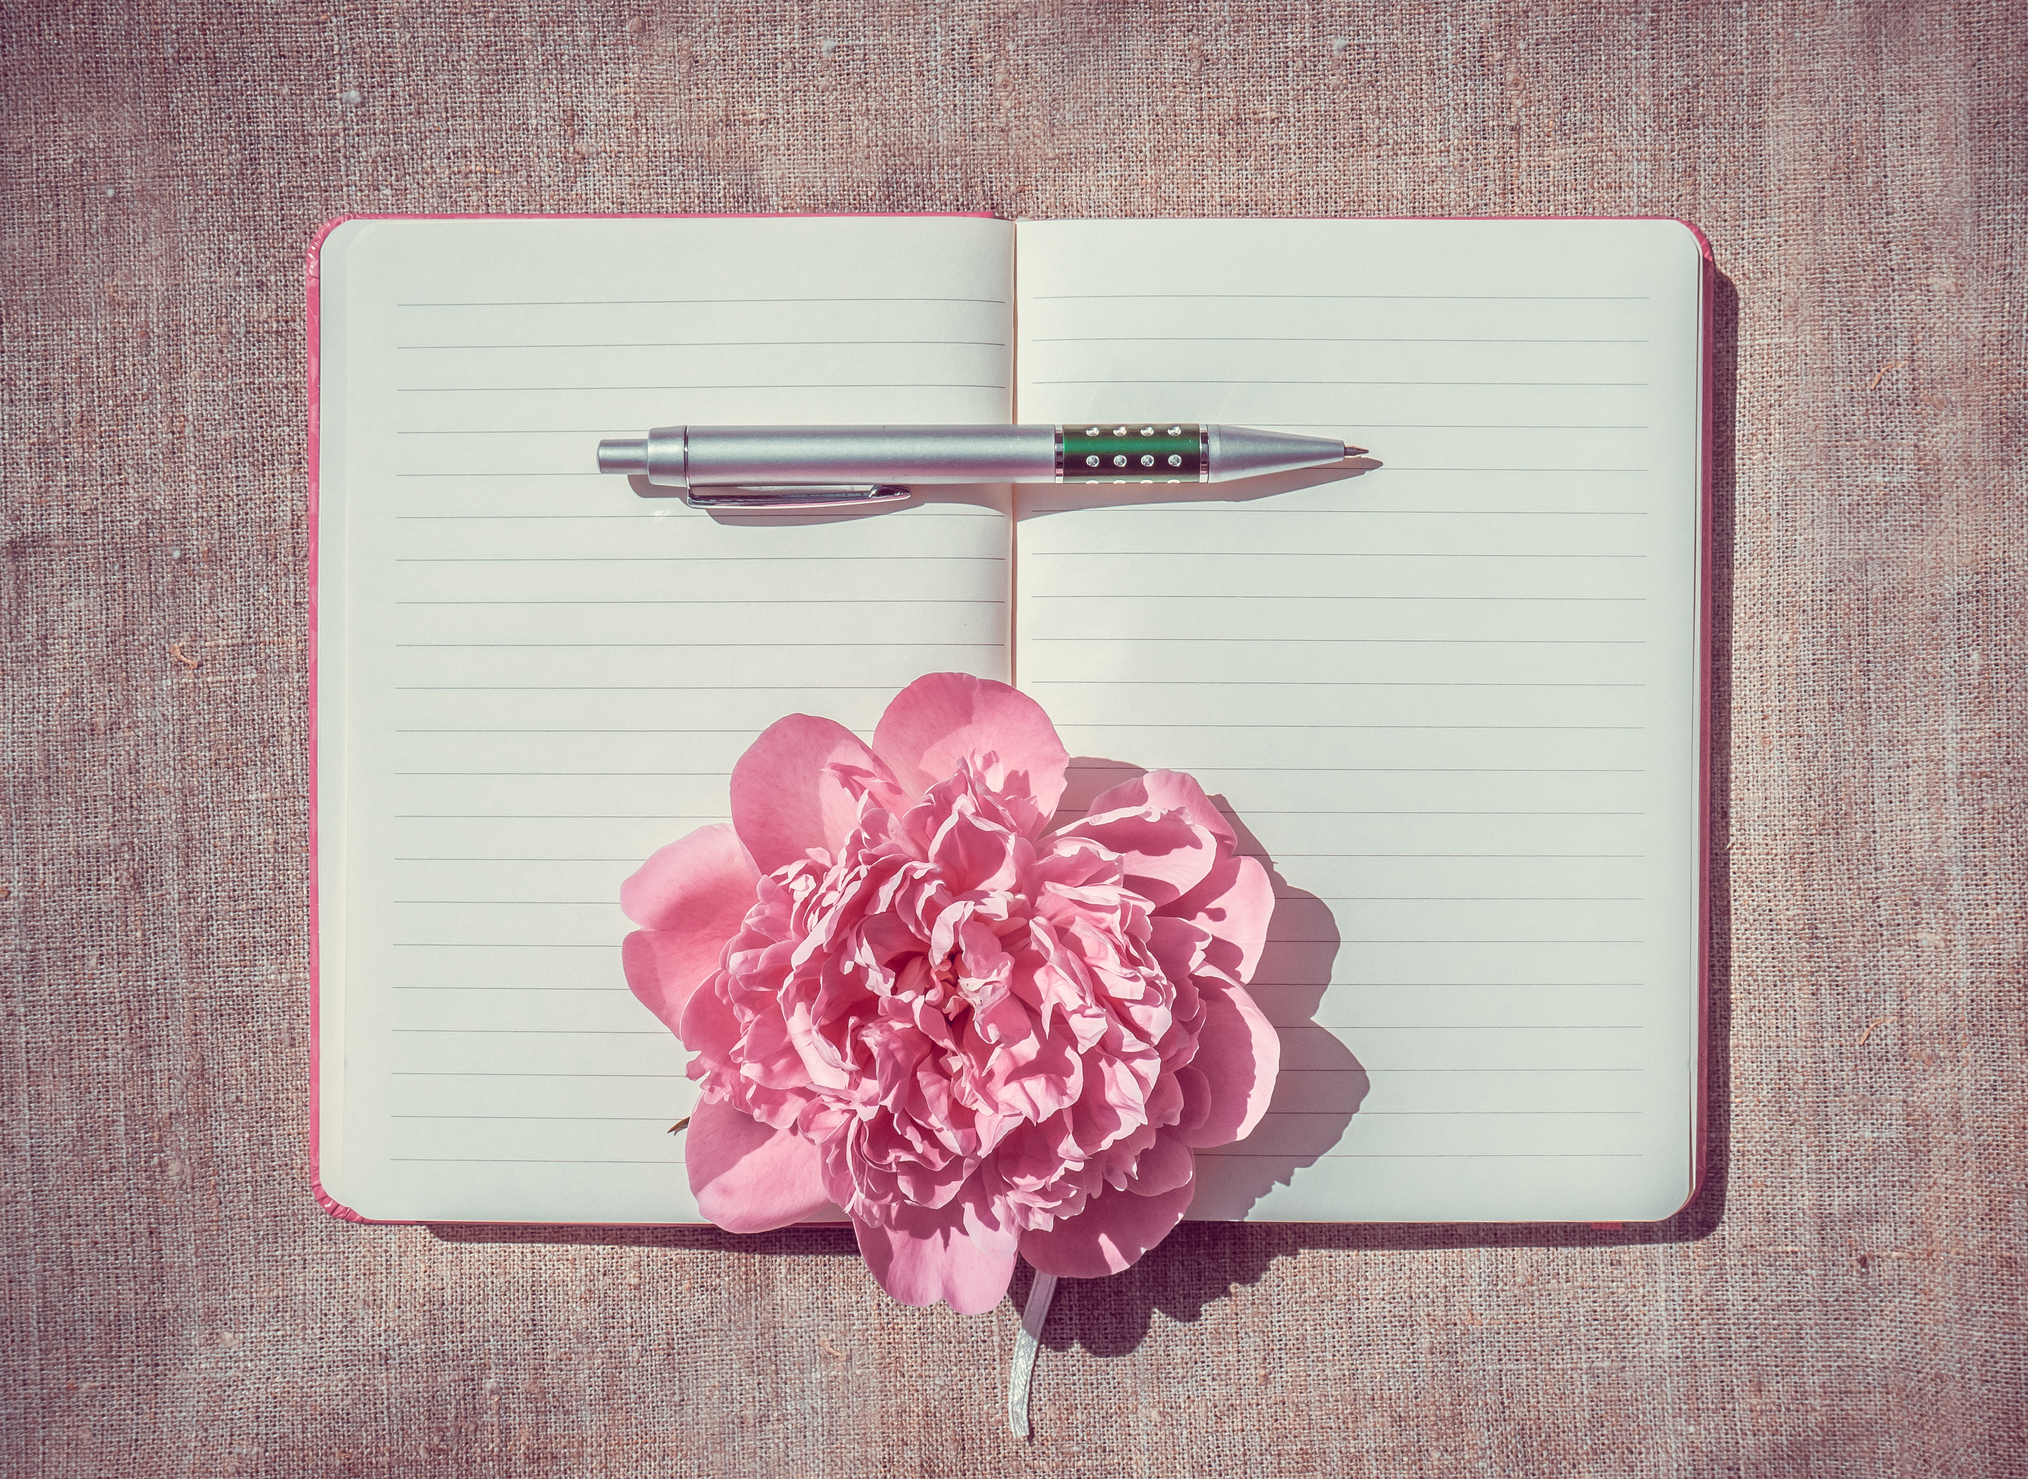 Write your own inspiring ideas and goals down to keep track! #balance #wellbeing #healthyhabits #radiantskin